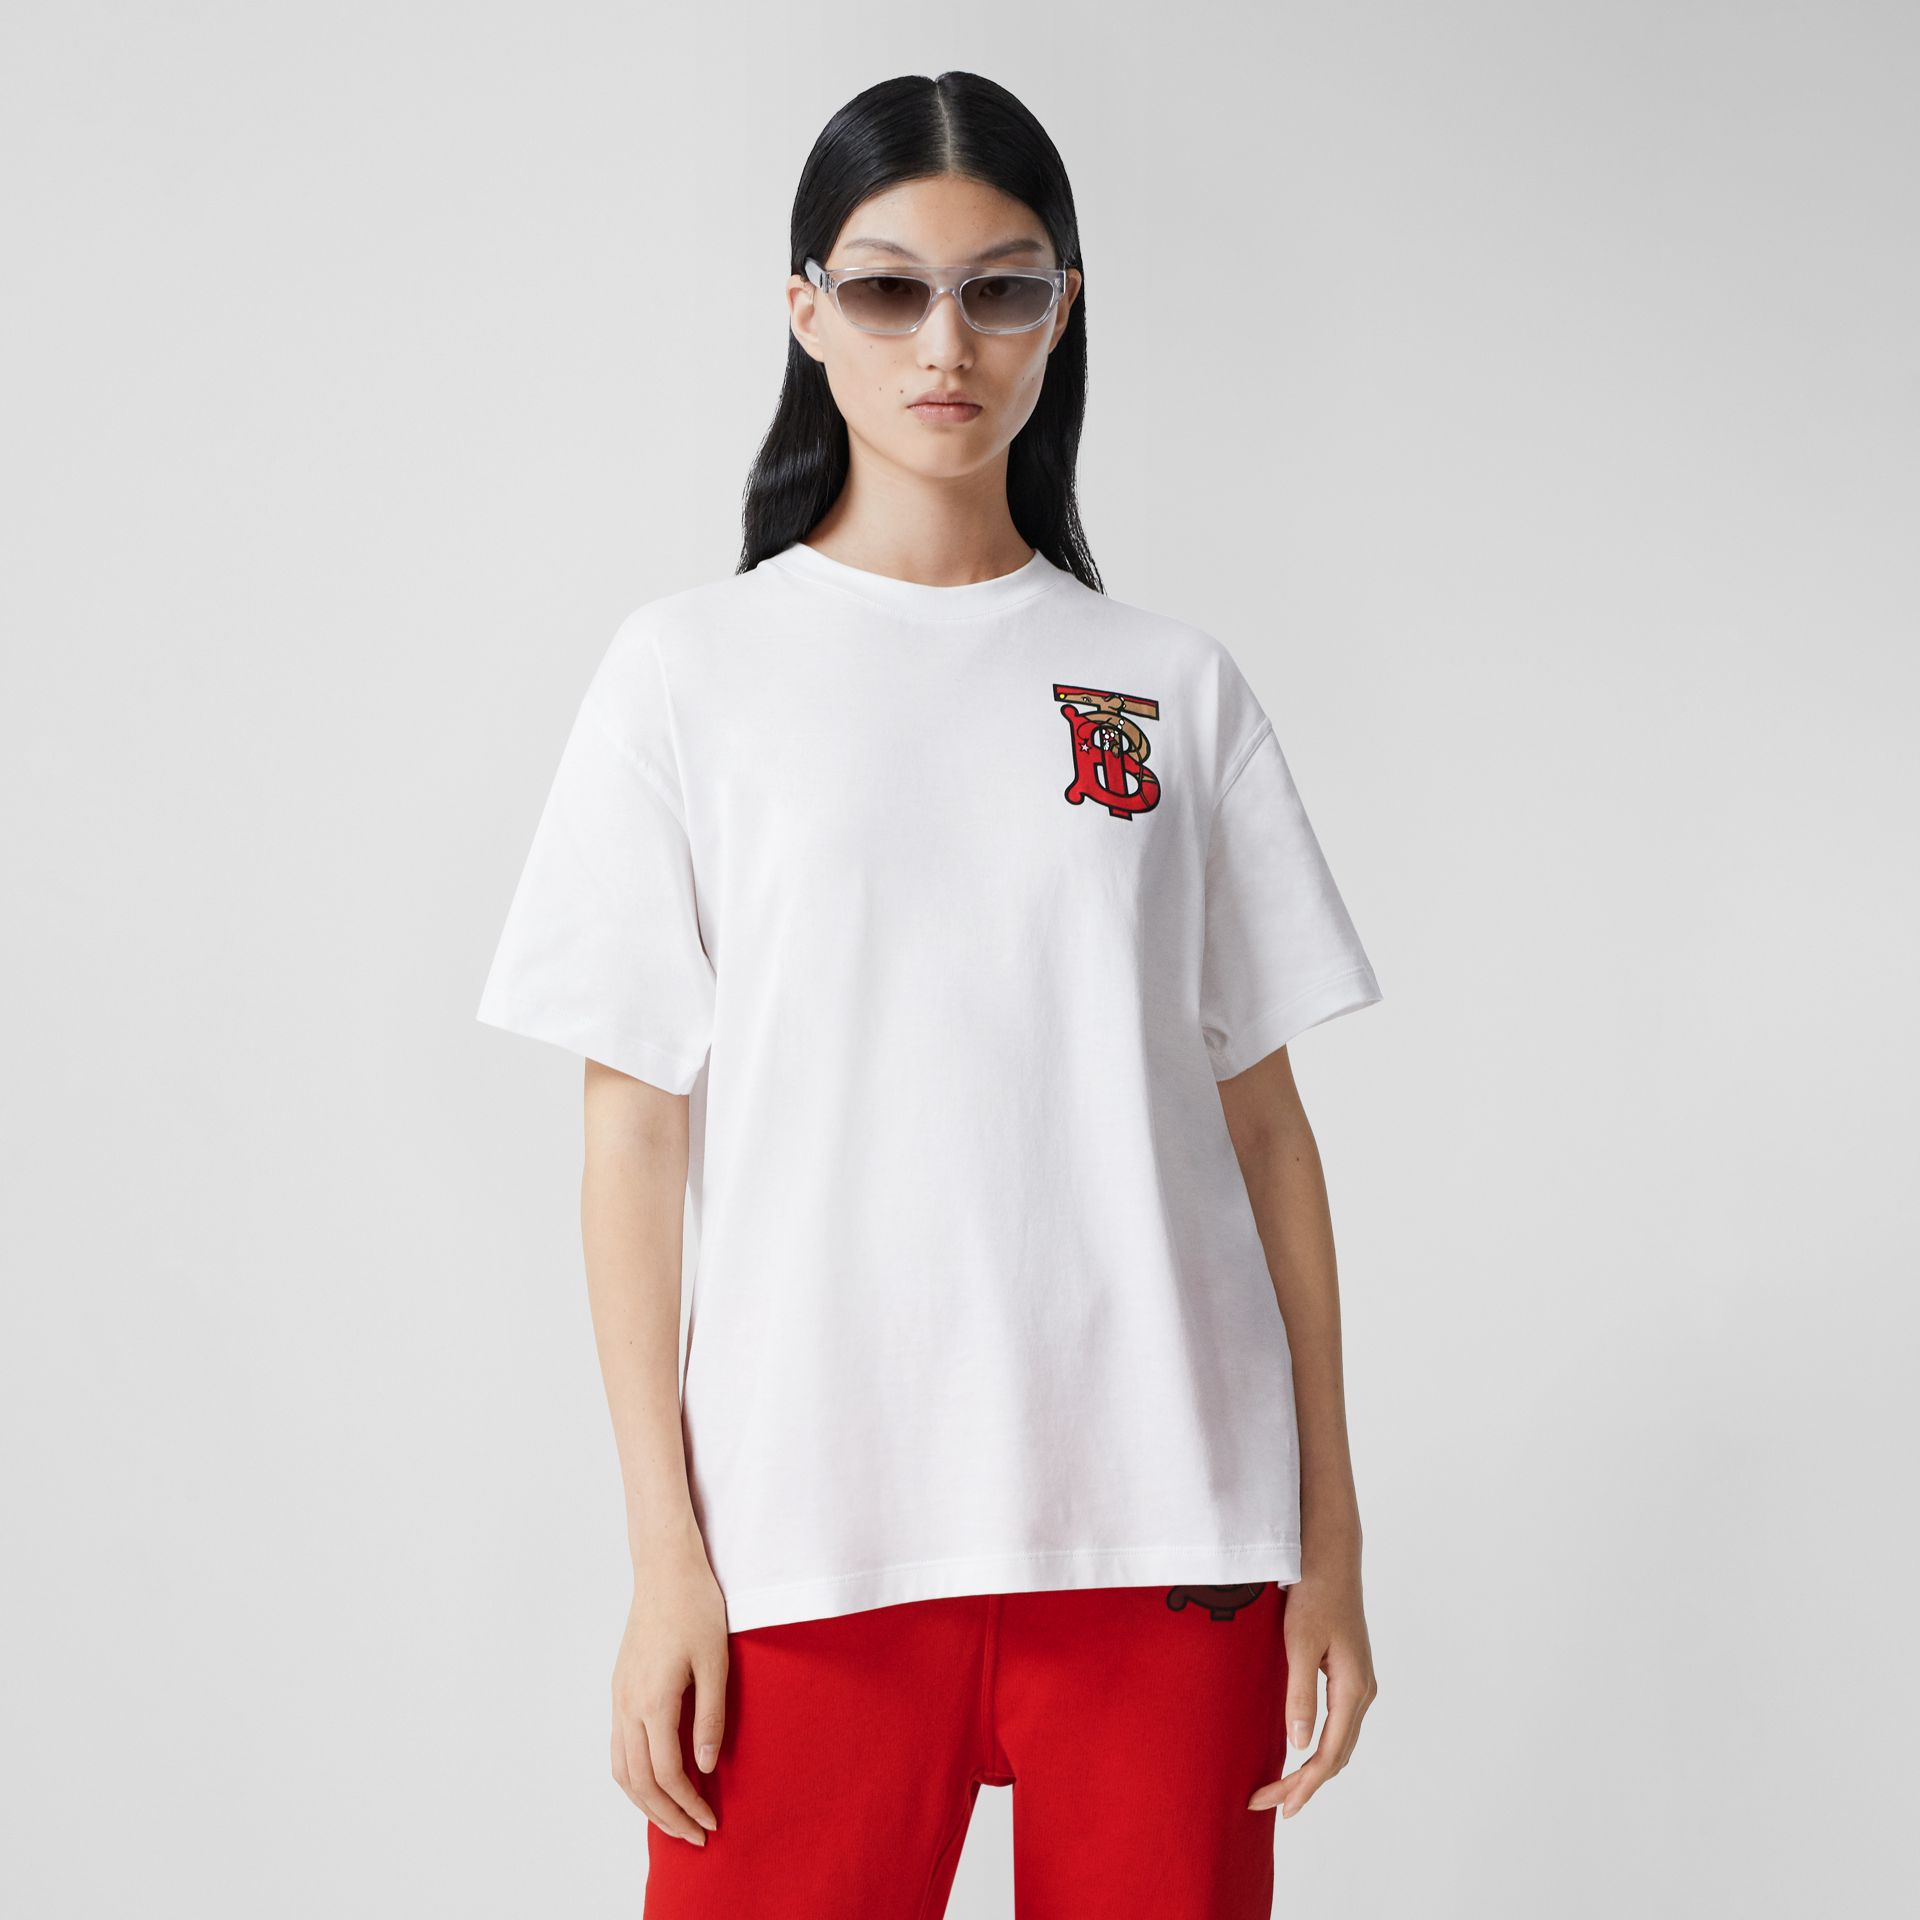 Monogram Motif Cotton Oversized T-shirt in White - Women | Burberry - gallery image 4